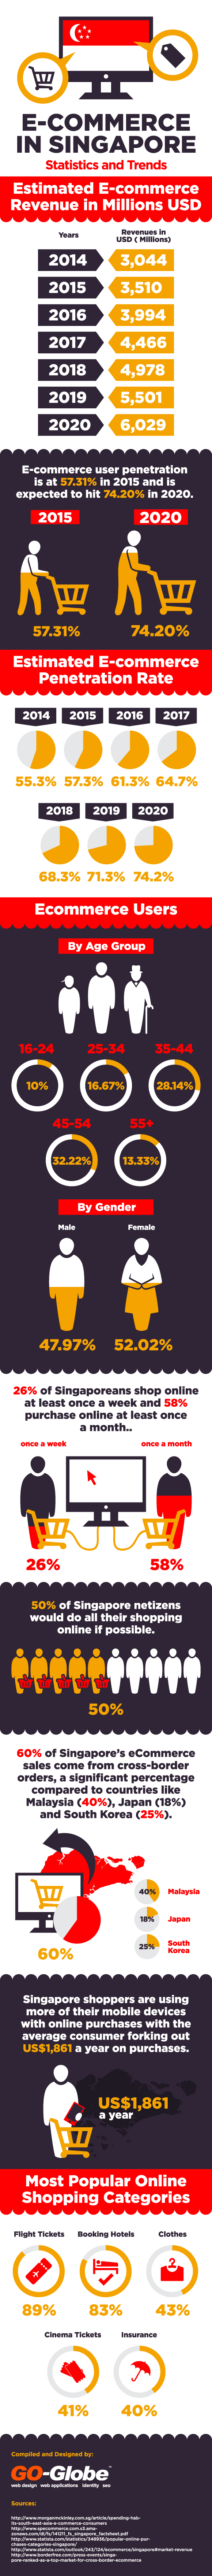 E-commerce in Singapore